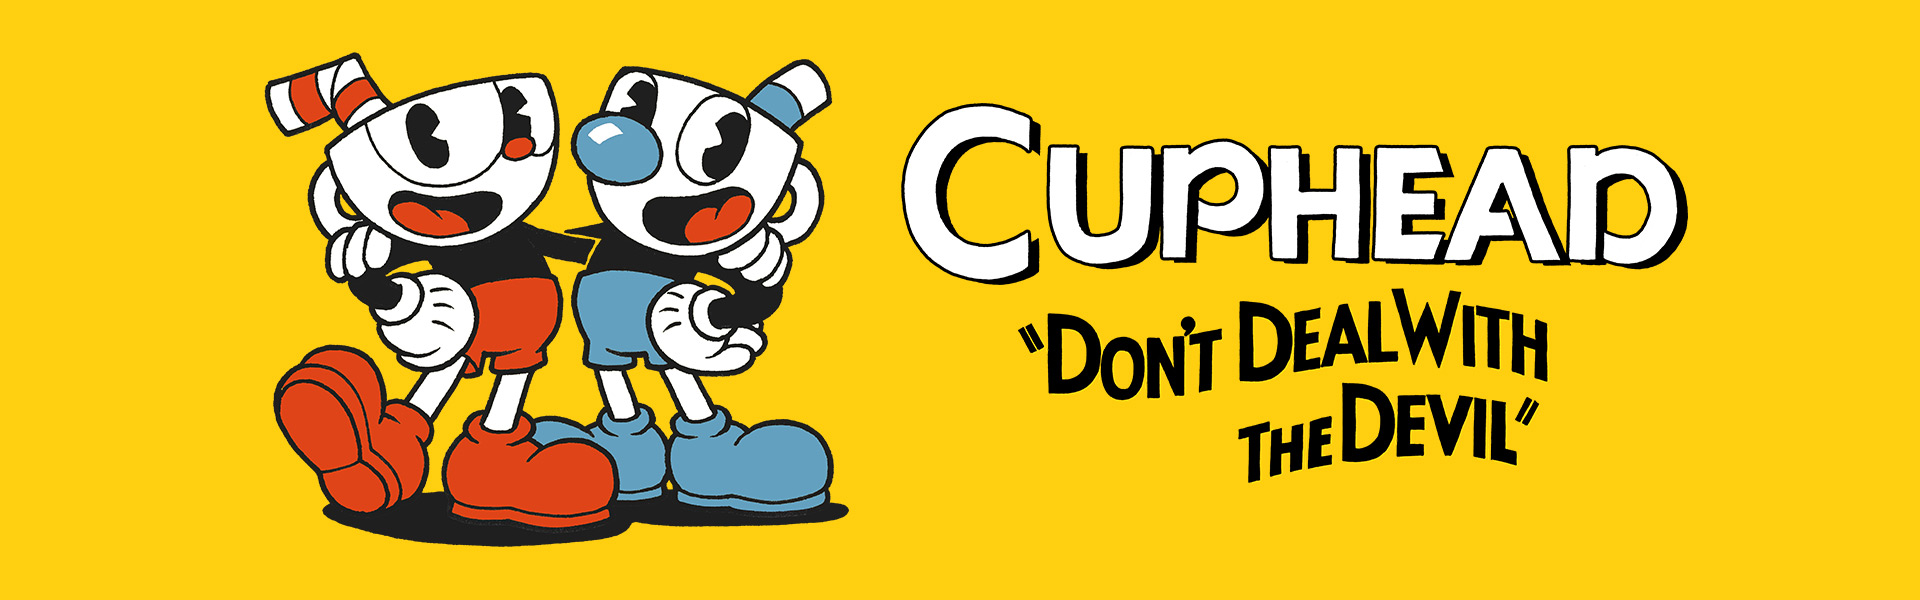 cuphead, Don't Deal with the Devil, cuphead mugman and ms chalice characters posing